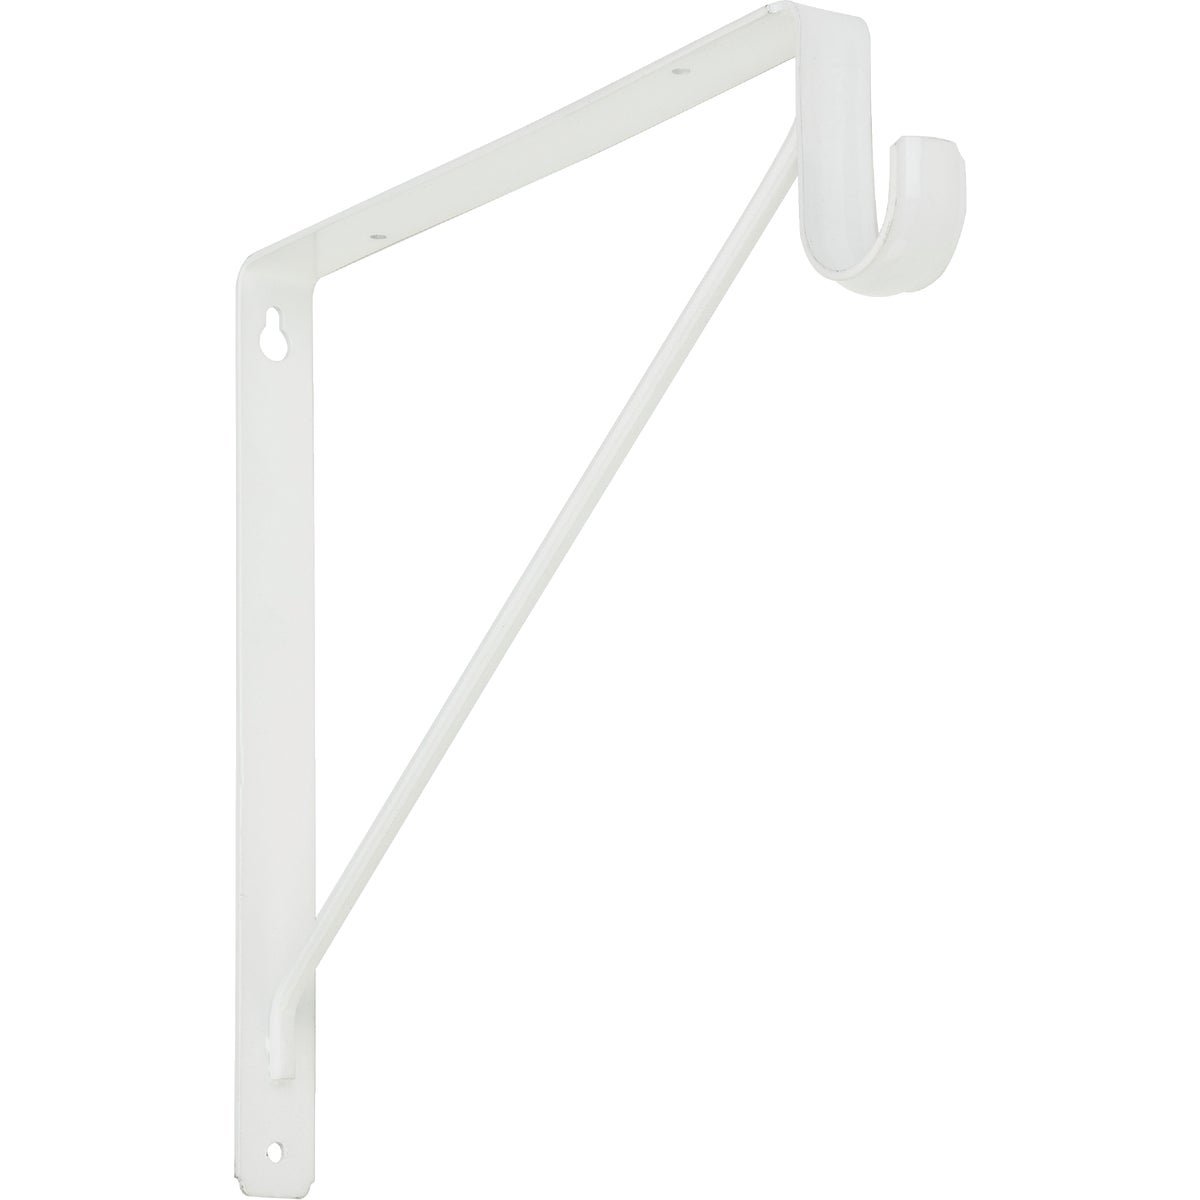 WHT SHELF & ROD BRACKET - N820225 by National Mfg Co